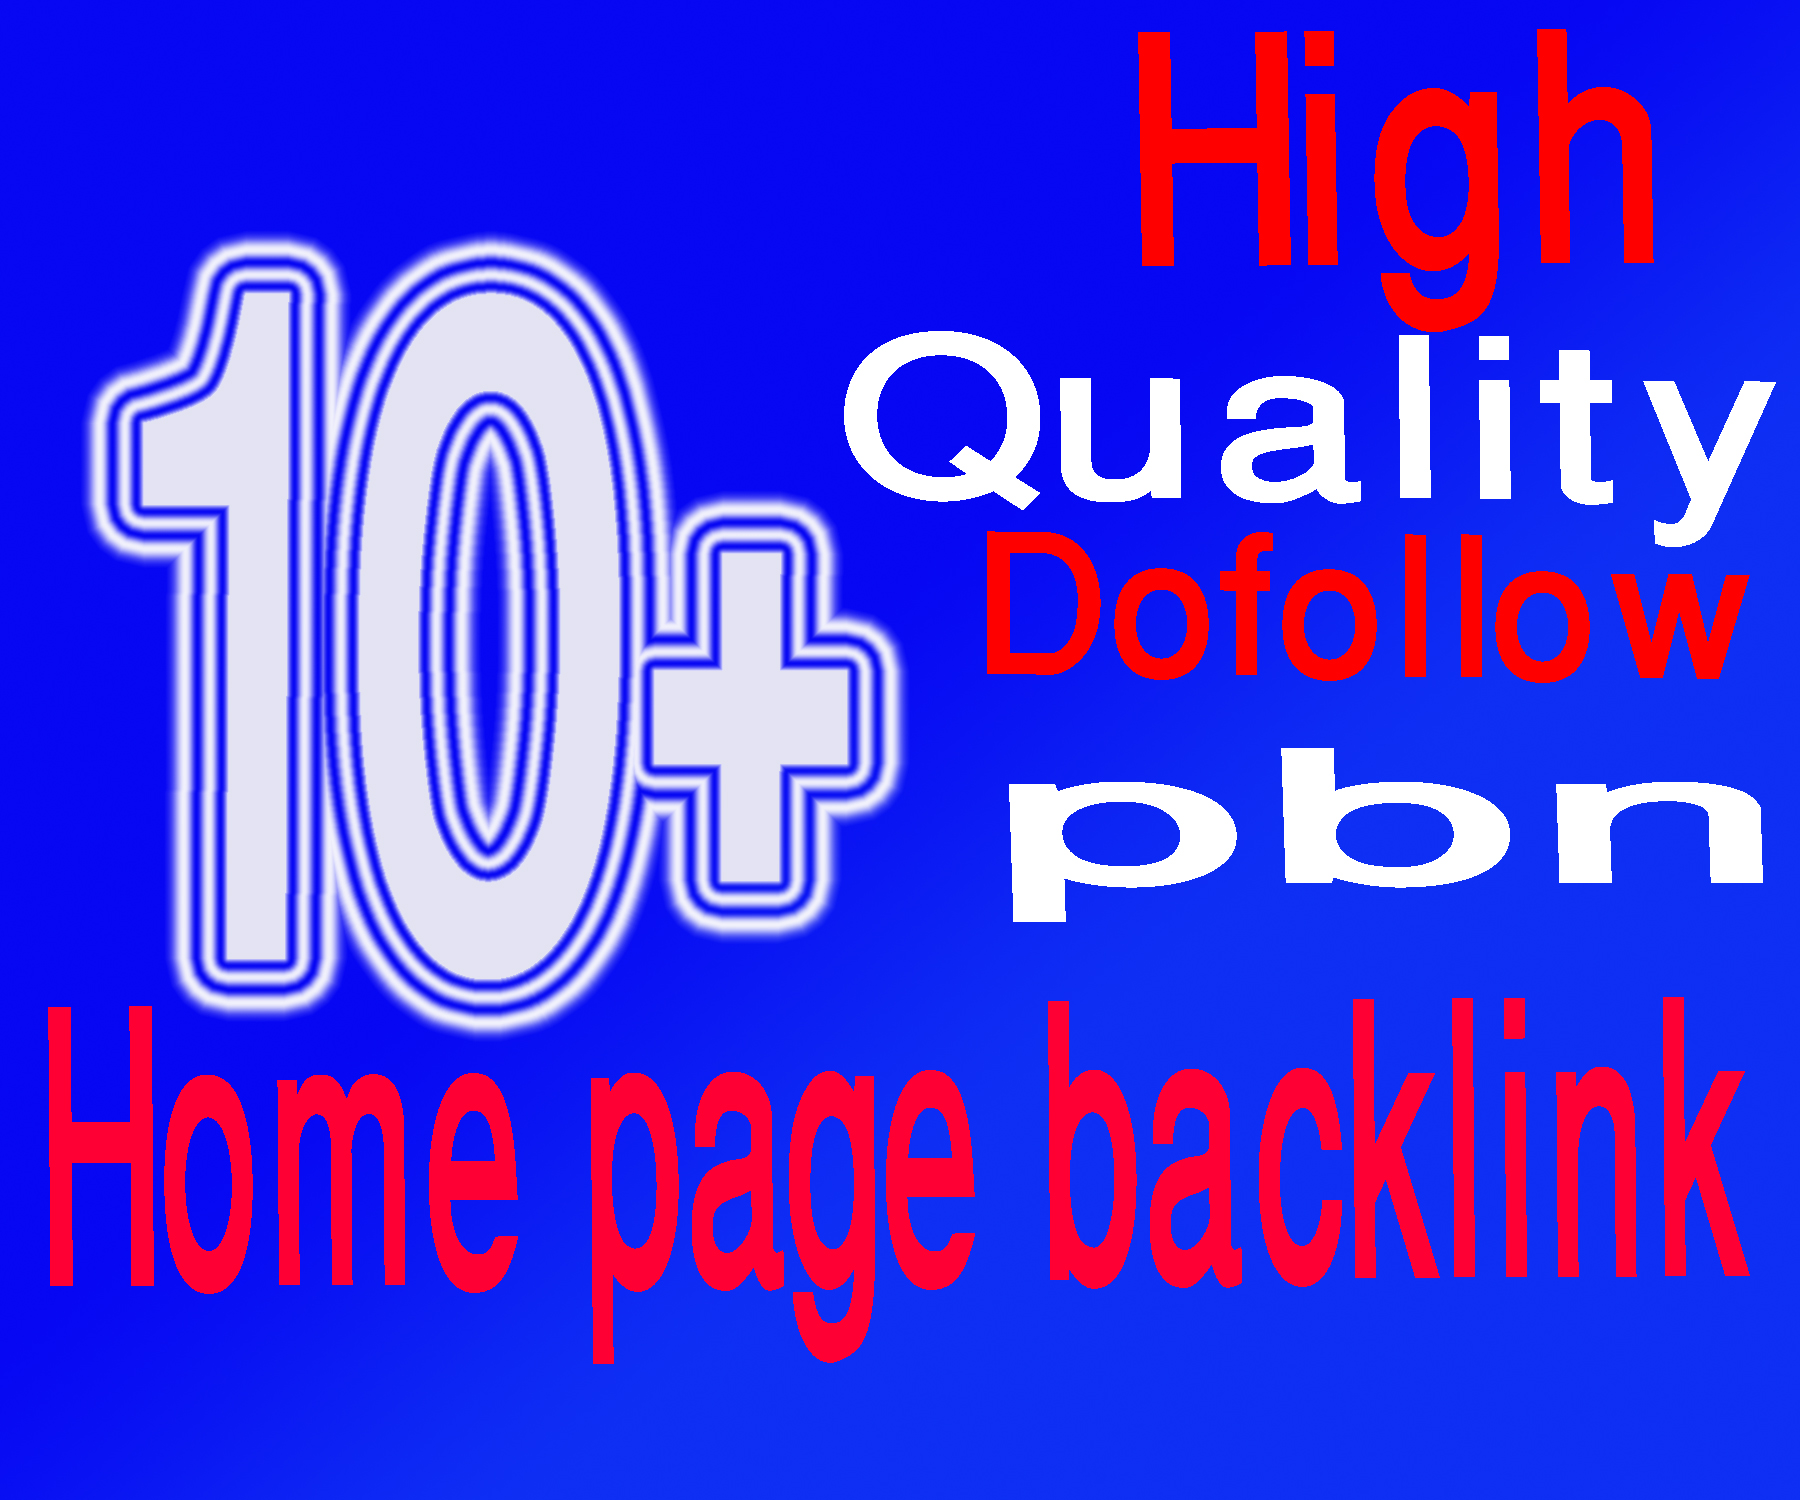 Build 10+ Manual DoFollow PBN Home Page Backlinks.